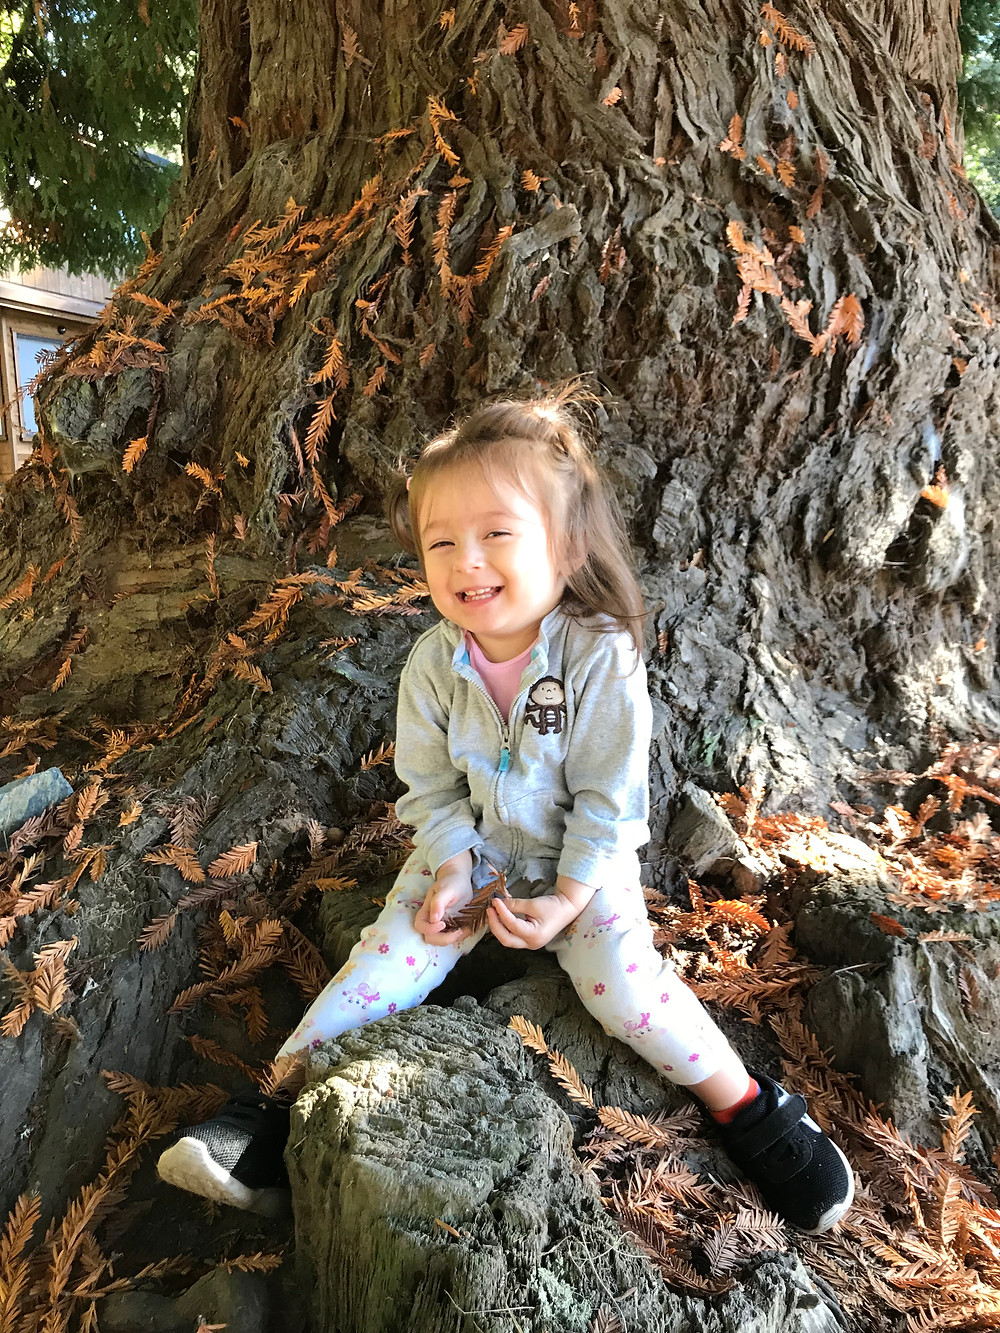 Cute smiling toddler sitting on the trunk of a tree